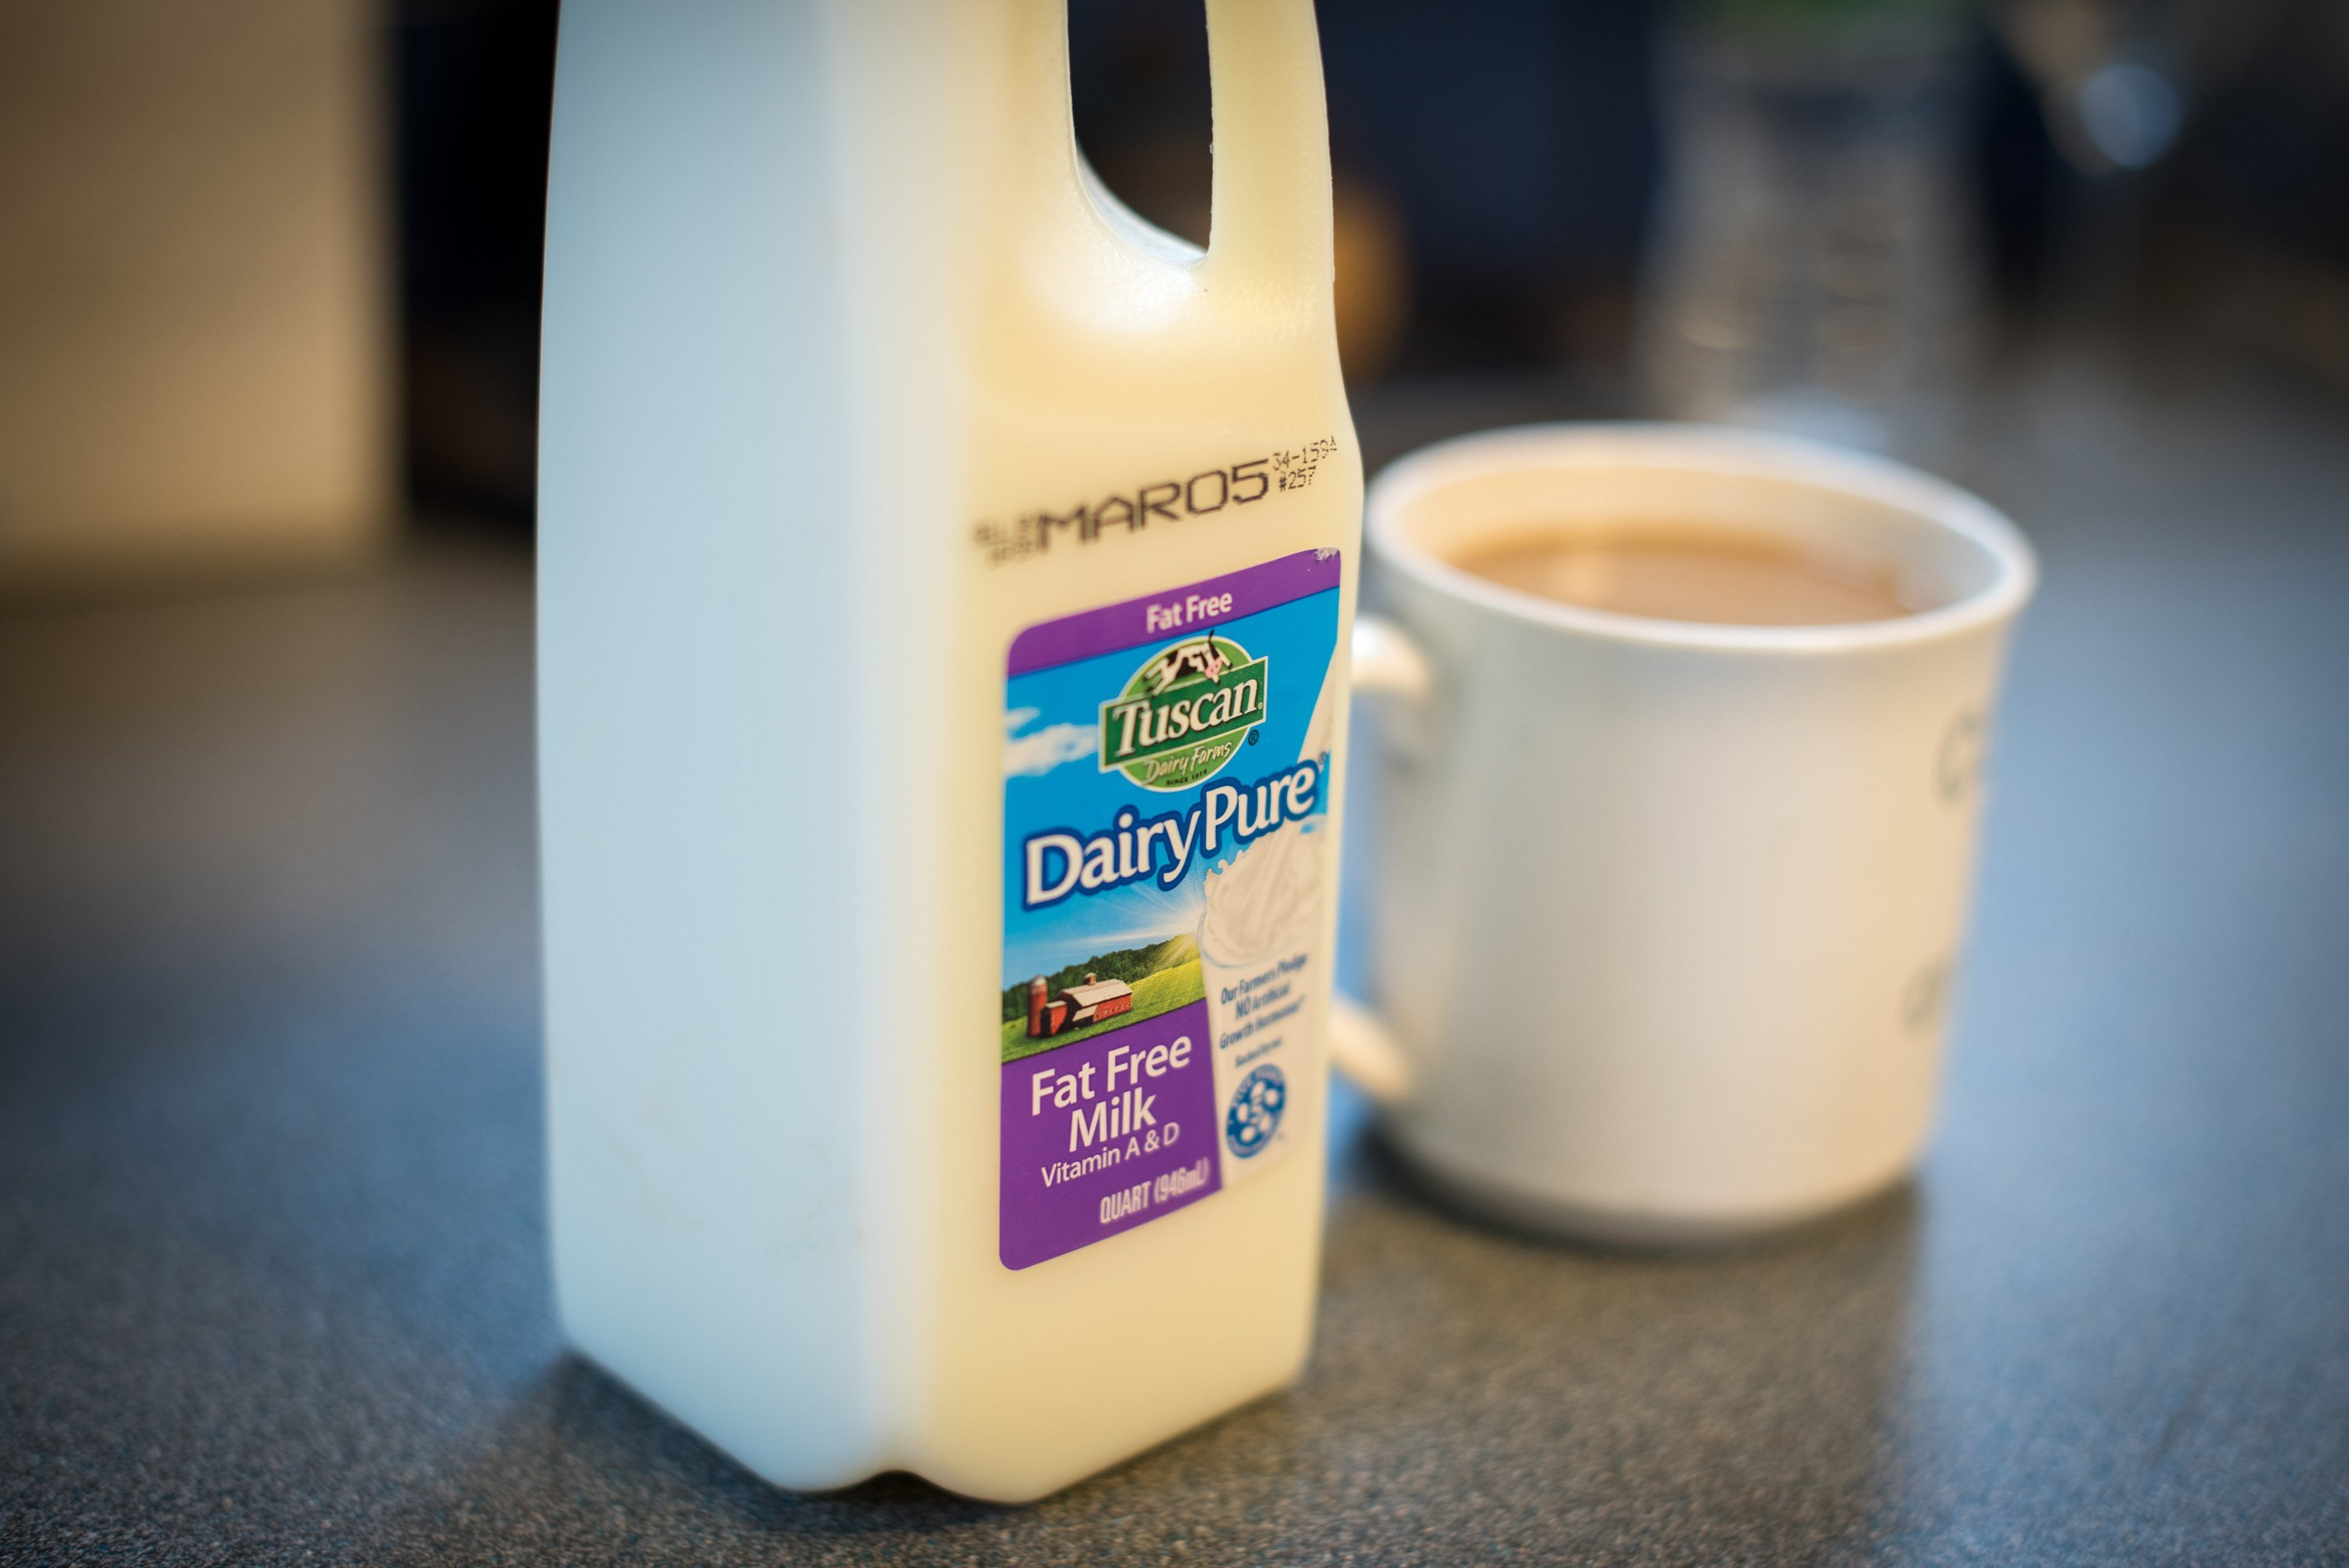 America's largest milk producer files for bankruptcy